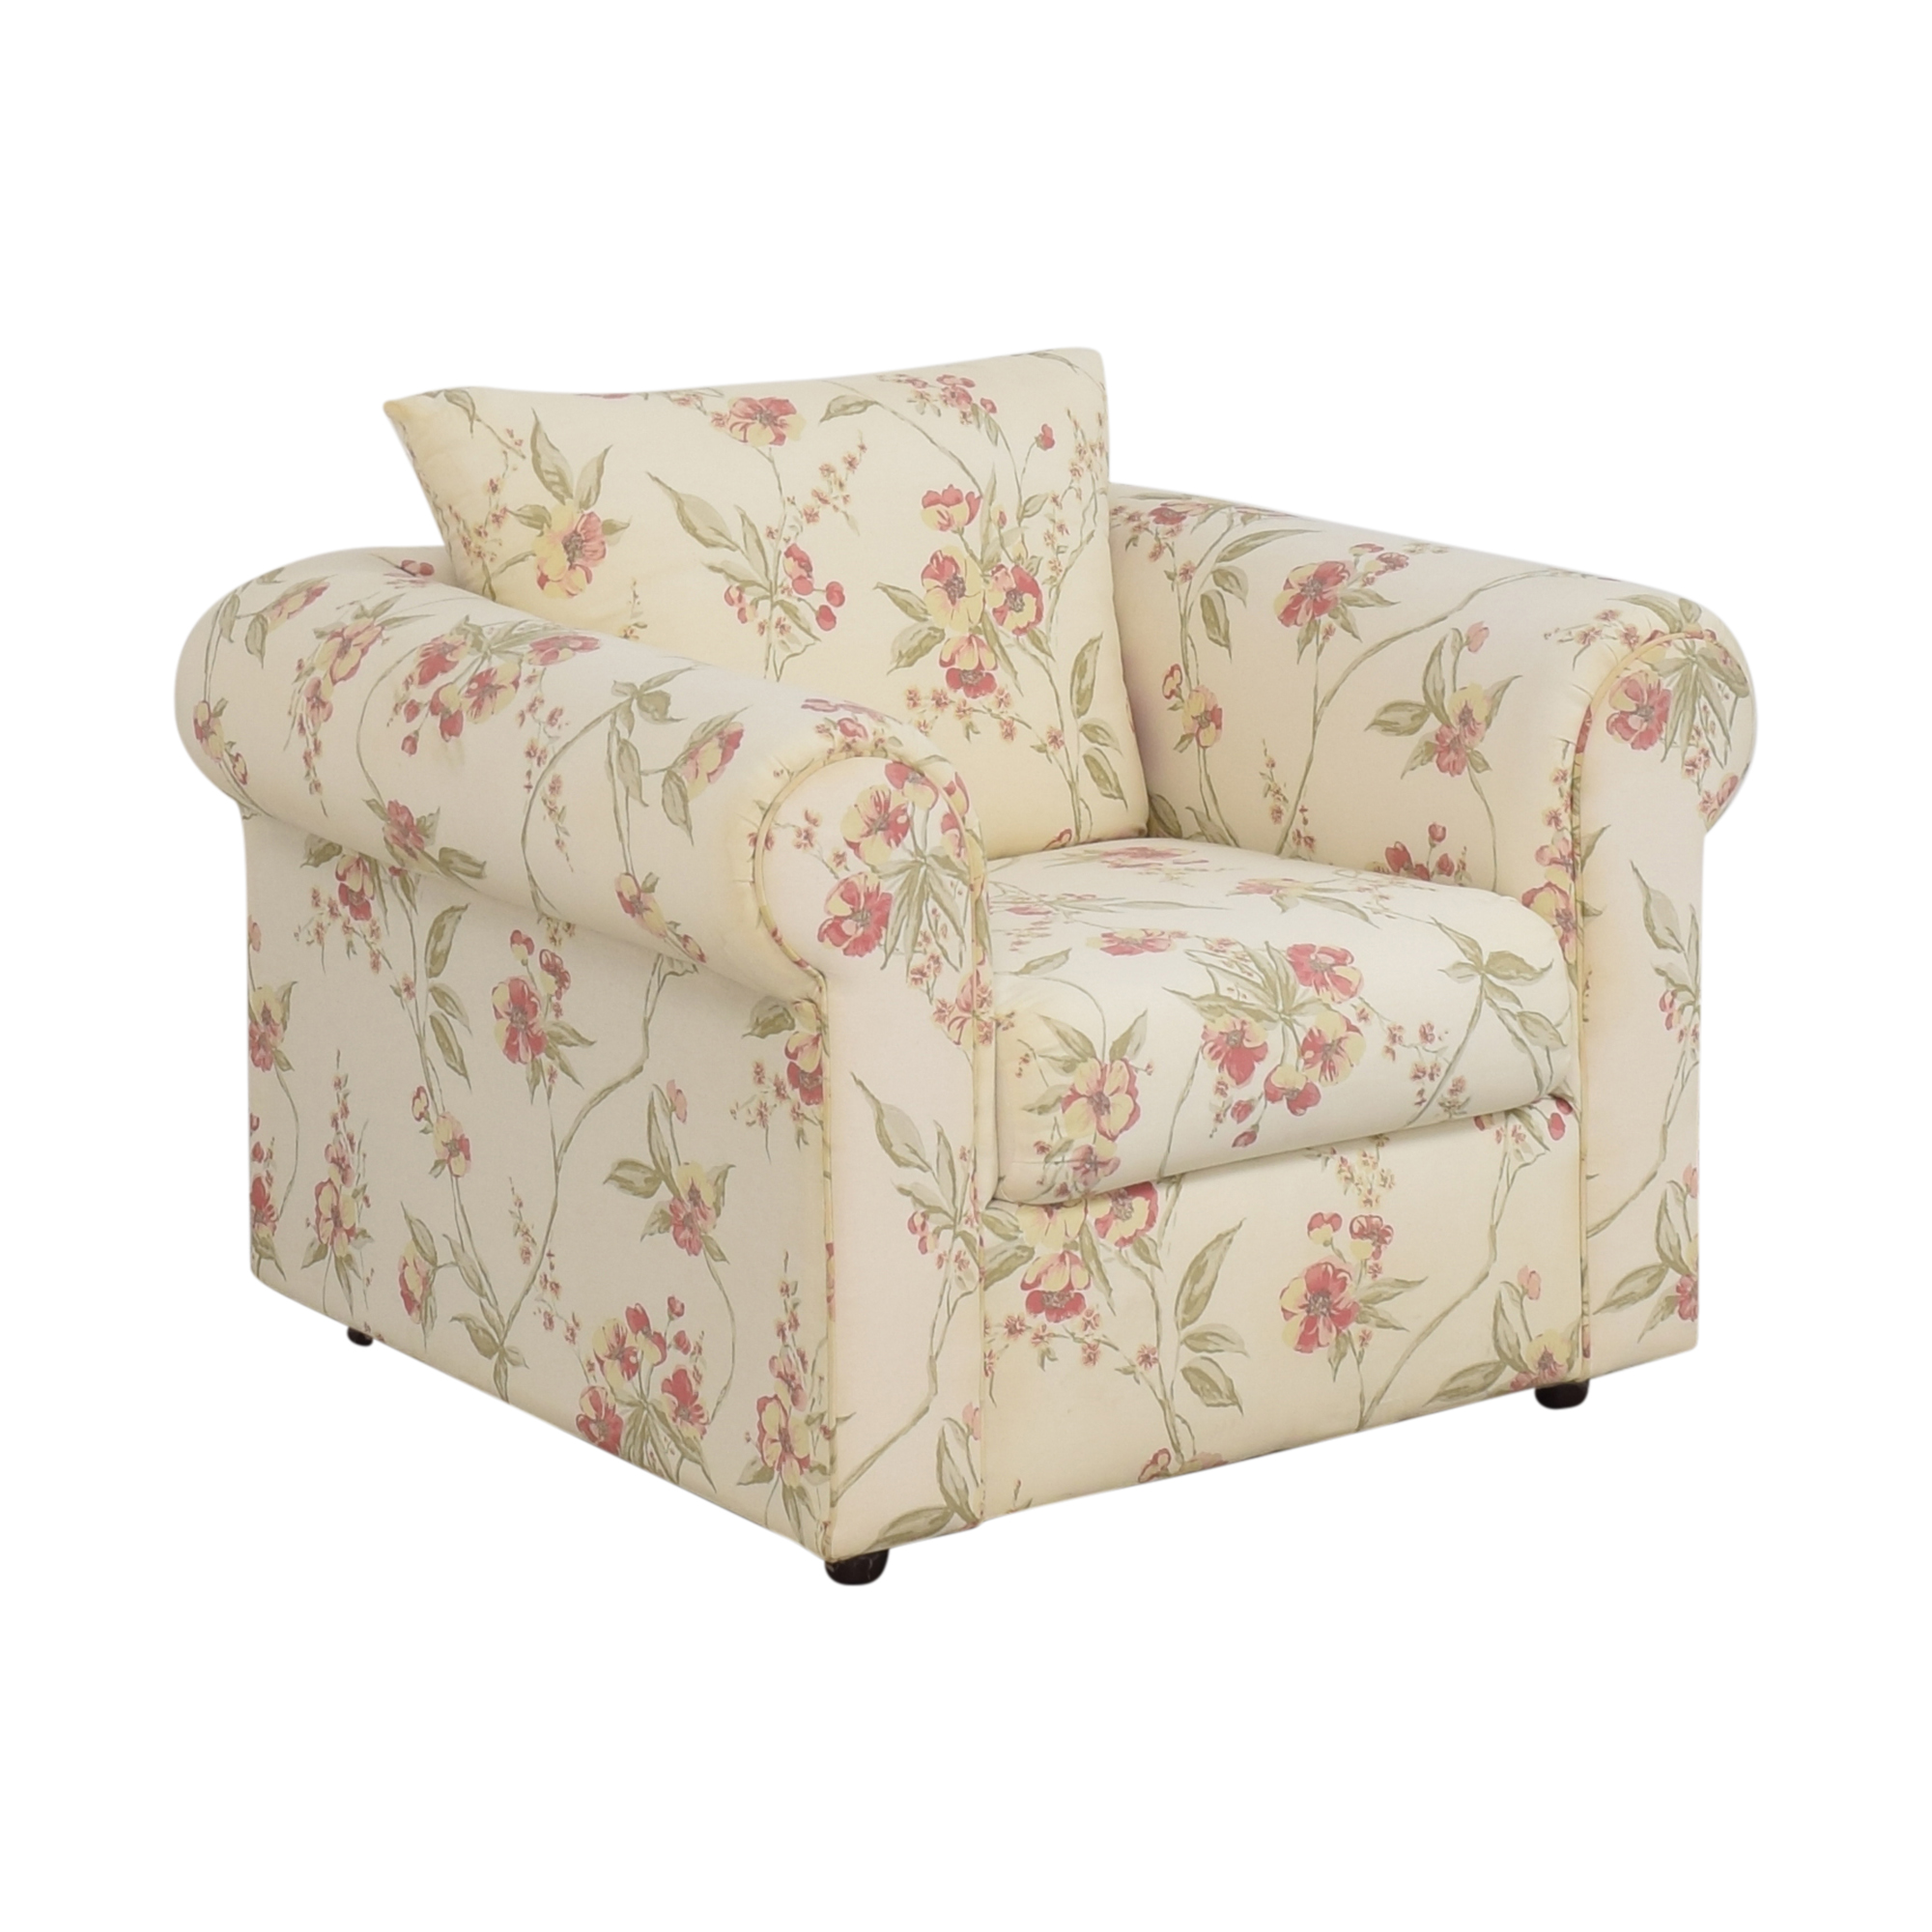 Ellis Home Furnishings Floral Accent Chair / Accent Chairs